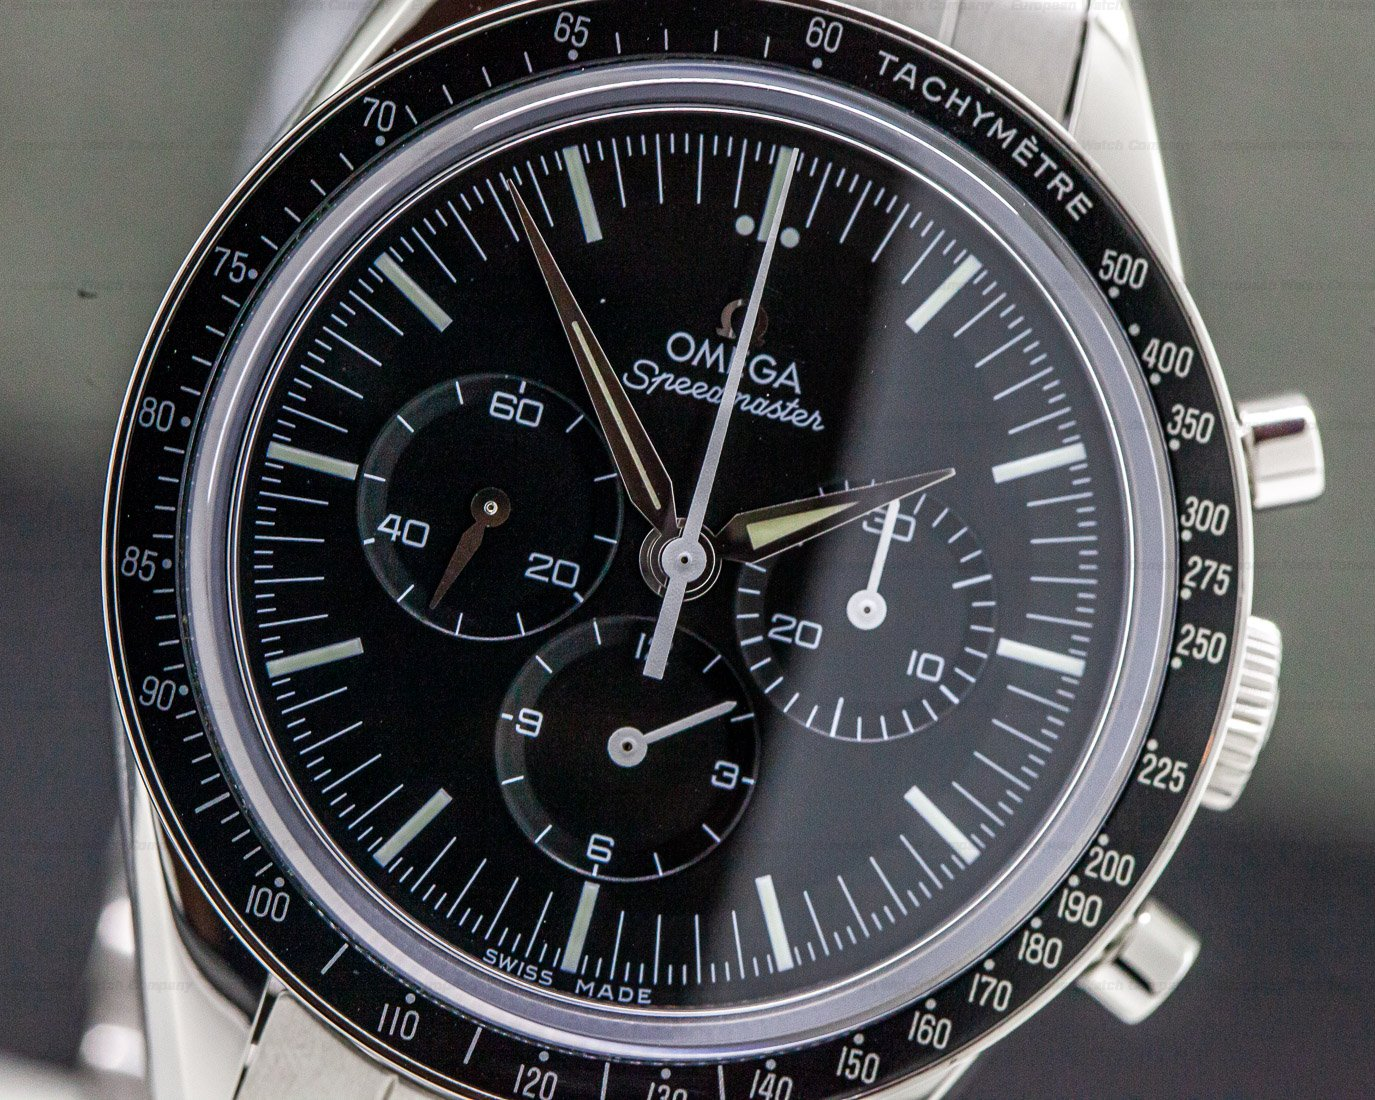 Omega 311.32.40.30.01.001 Speedmaster Professional Numbered Edition + Bracelet